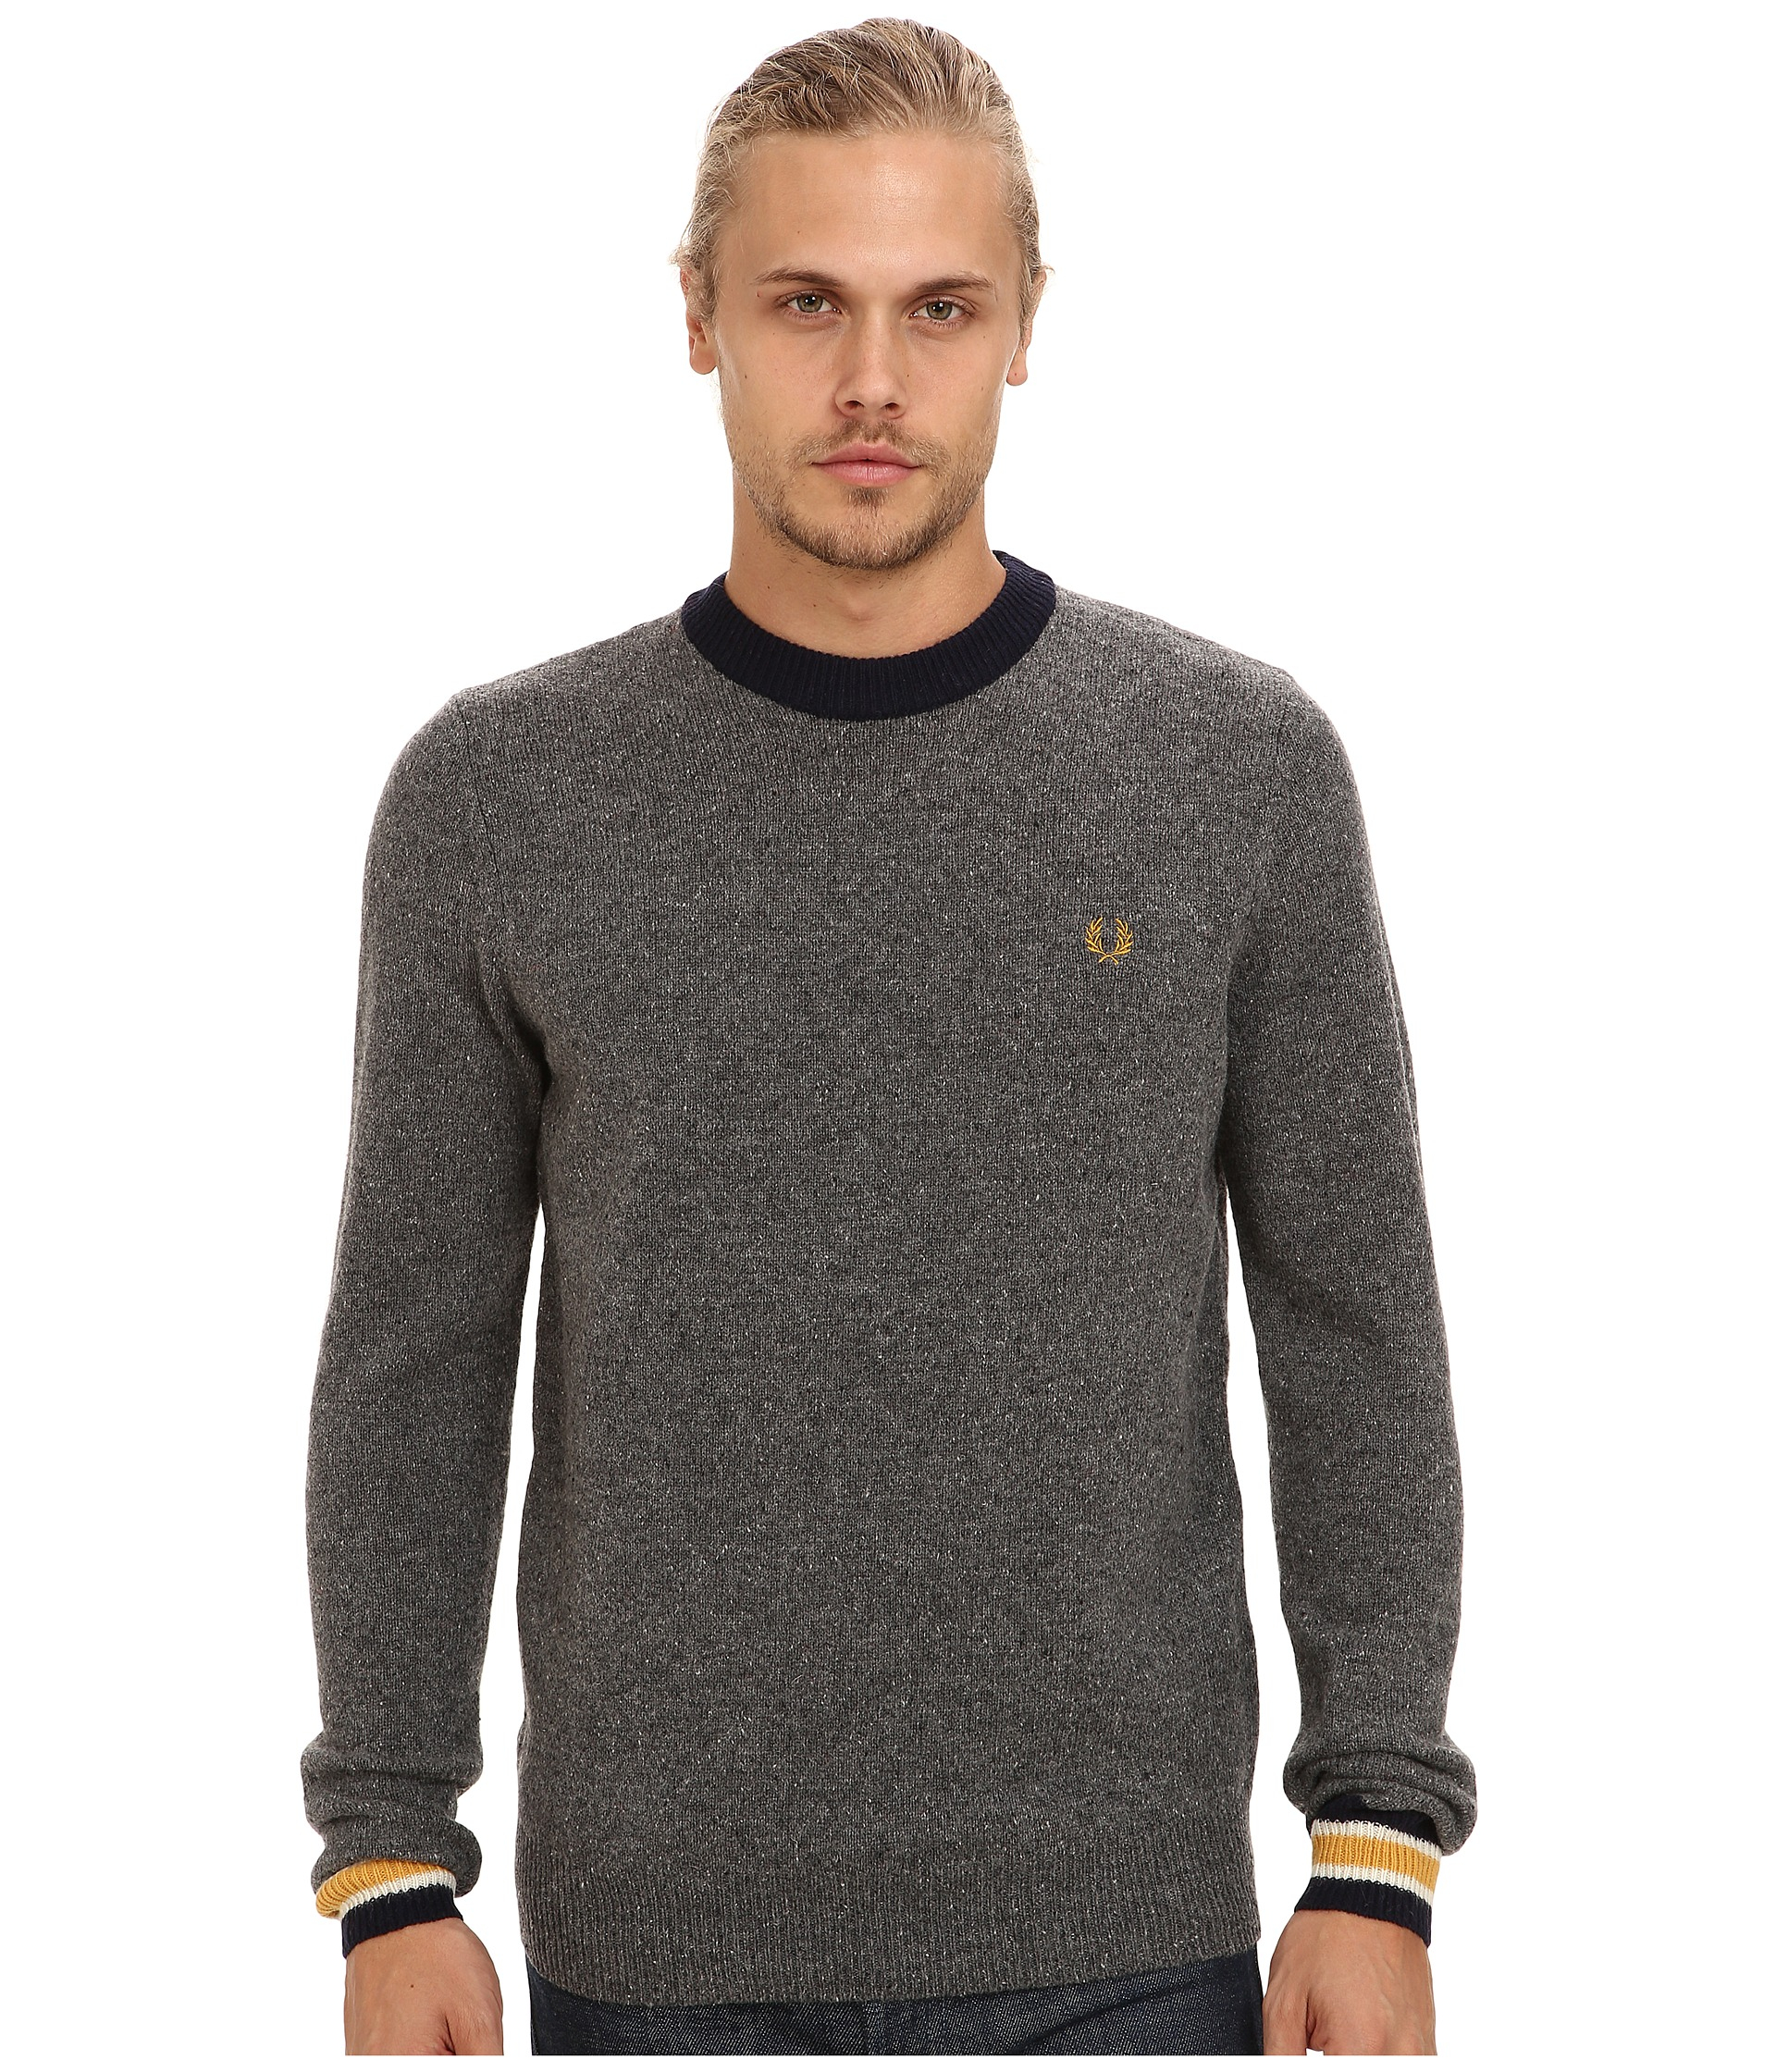 feb13da6d1aa3 Lyst - Fred Perry Fleck Knit Crew Neck Sweater in Gray for Men